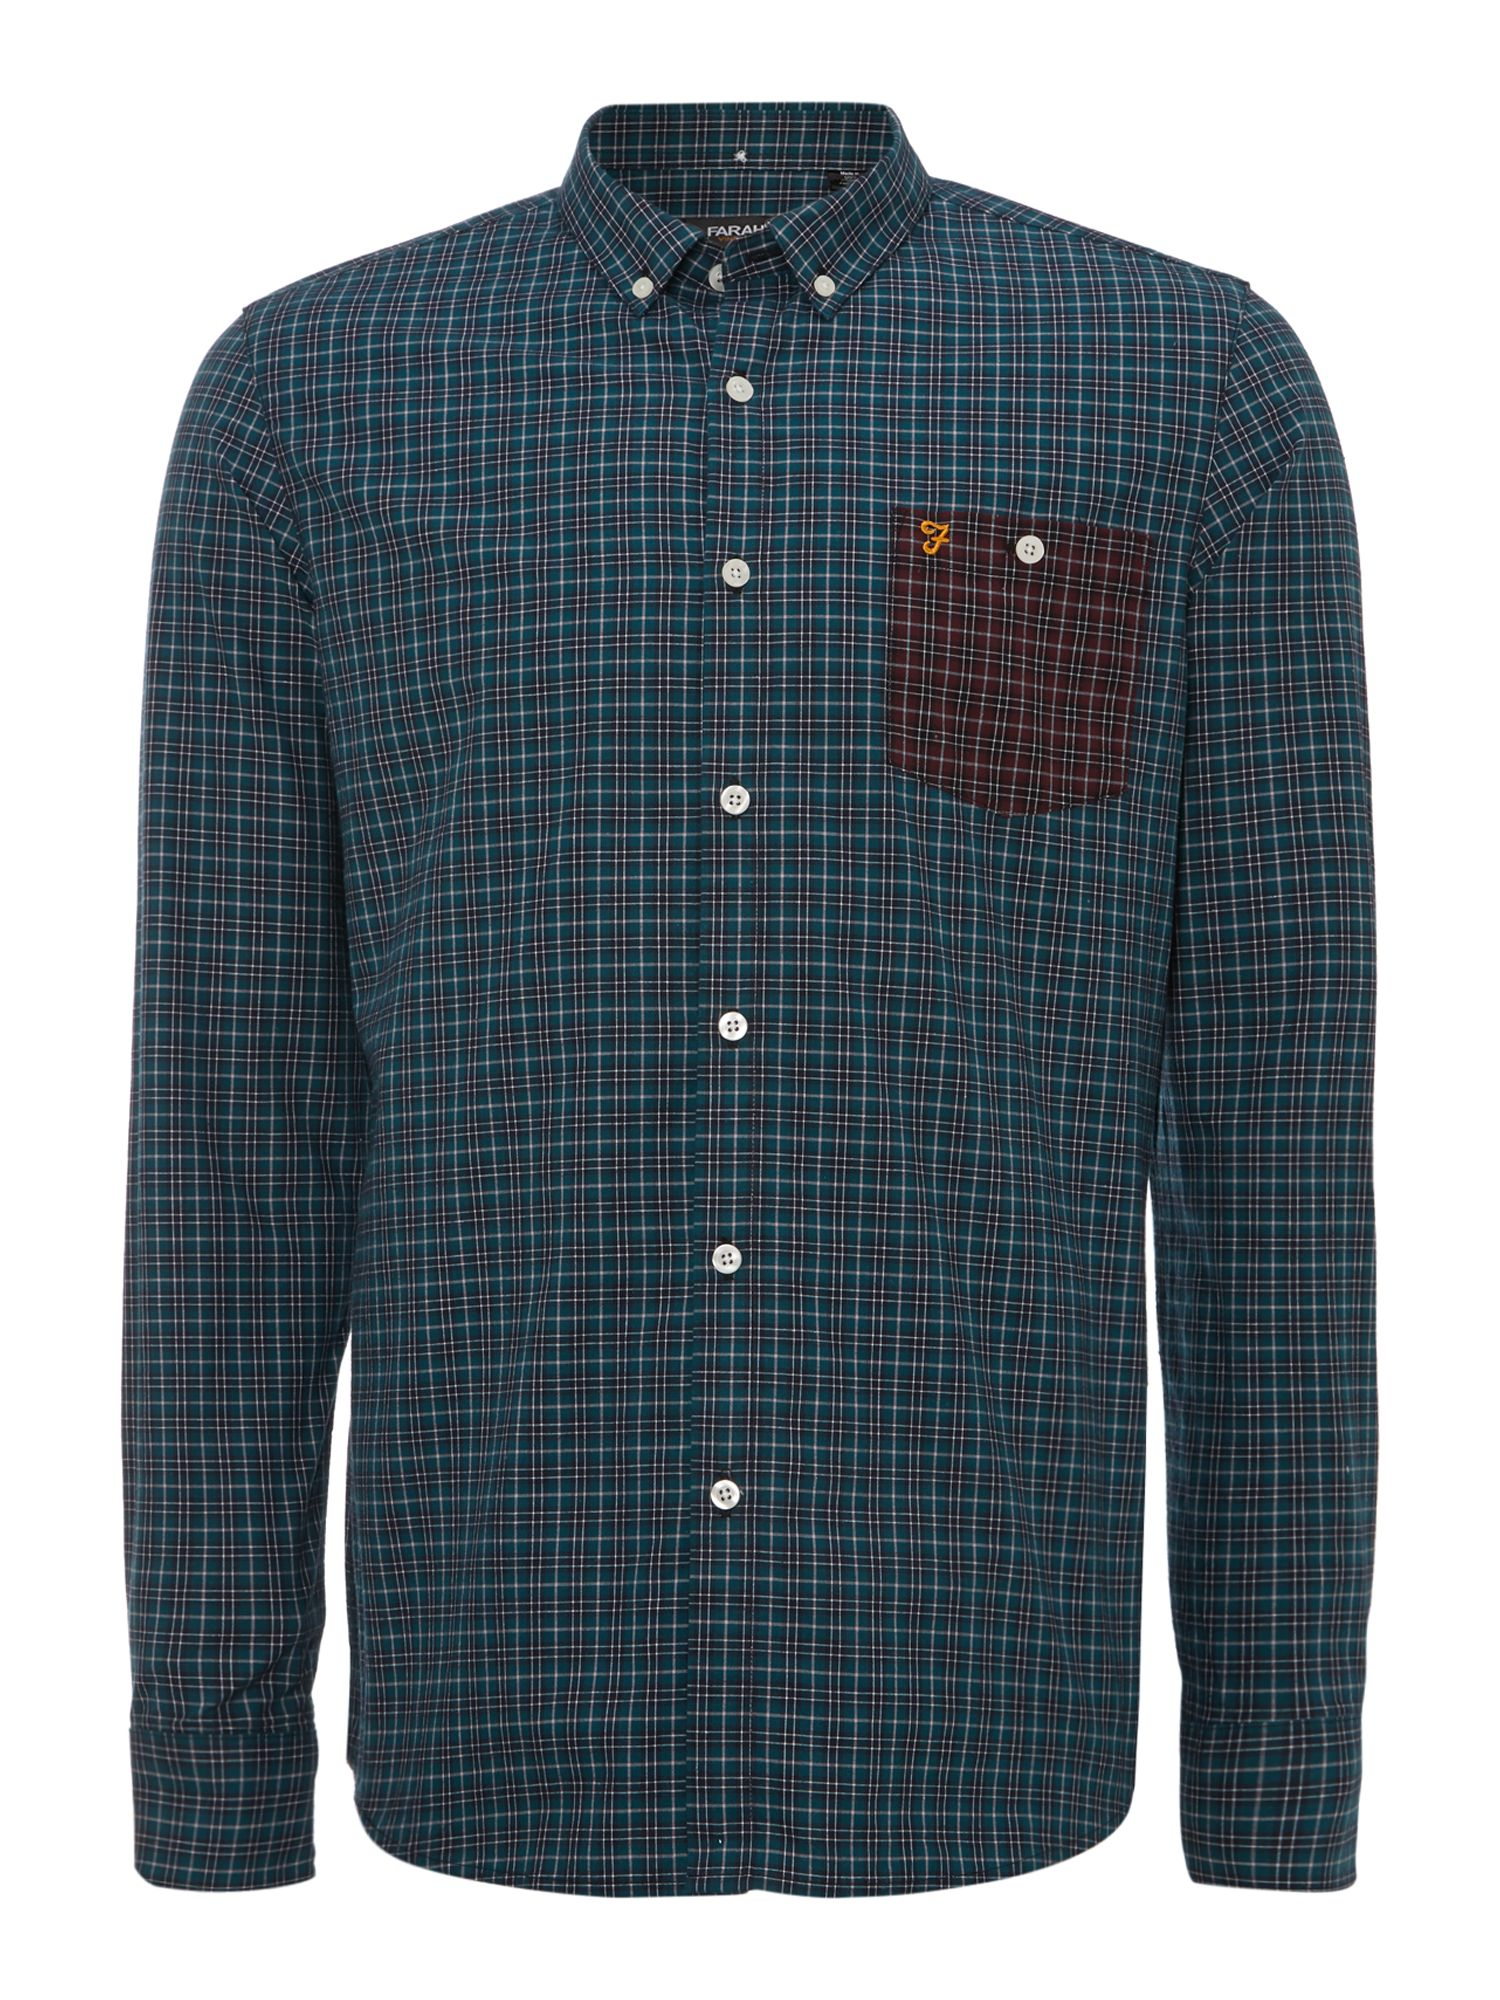 Colson xmas check long sleeve shirt